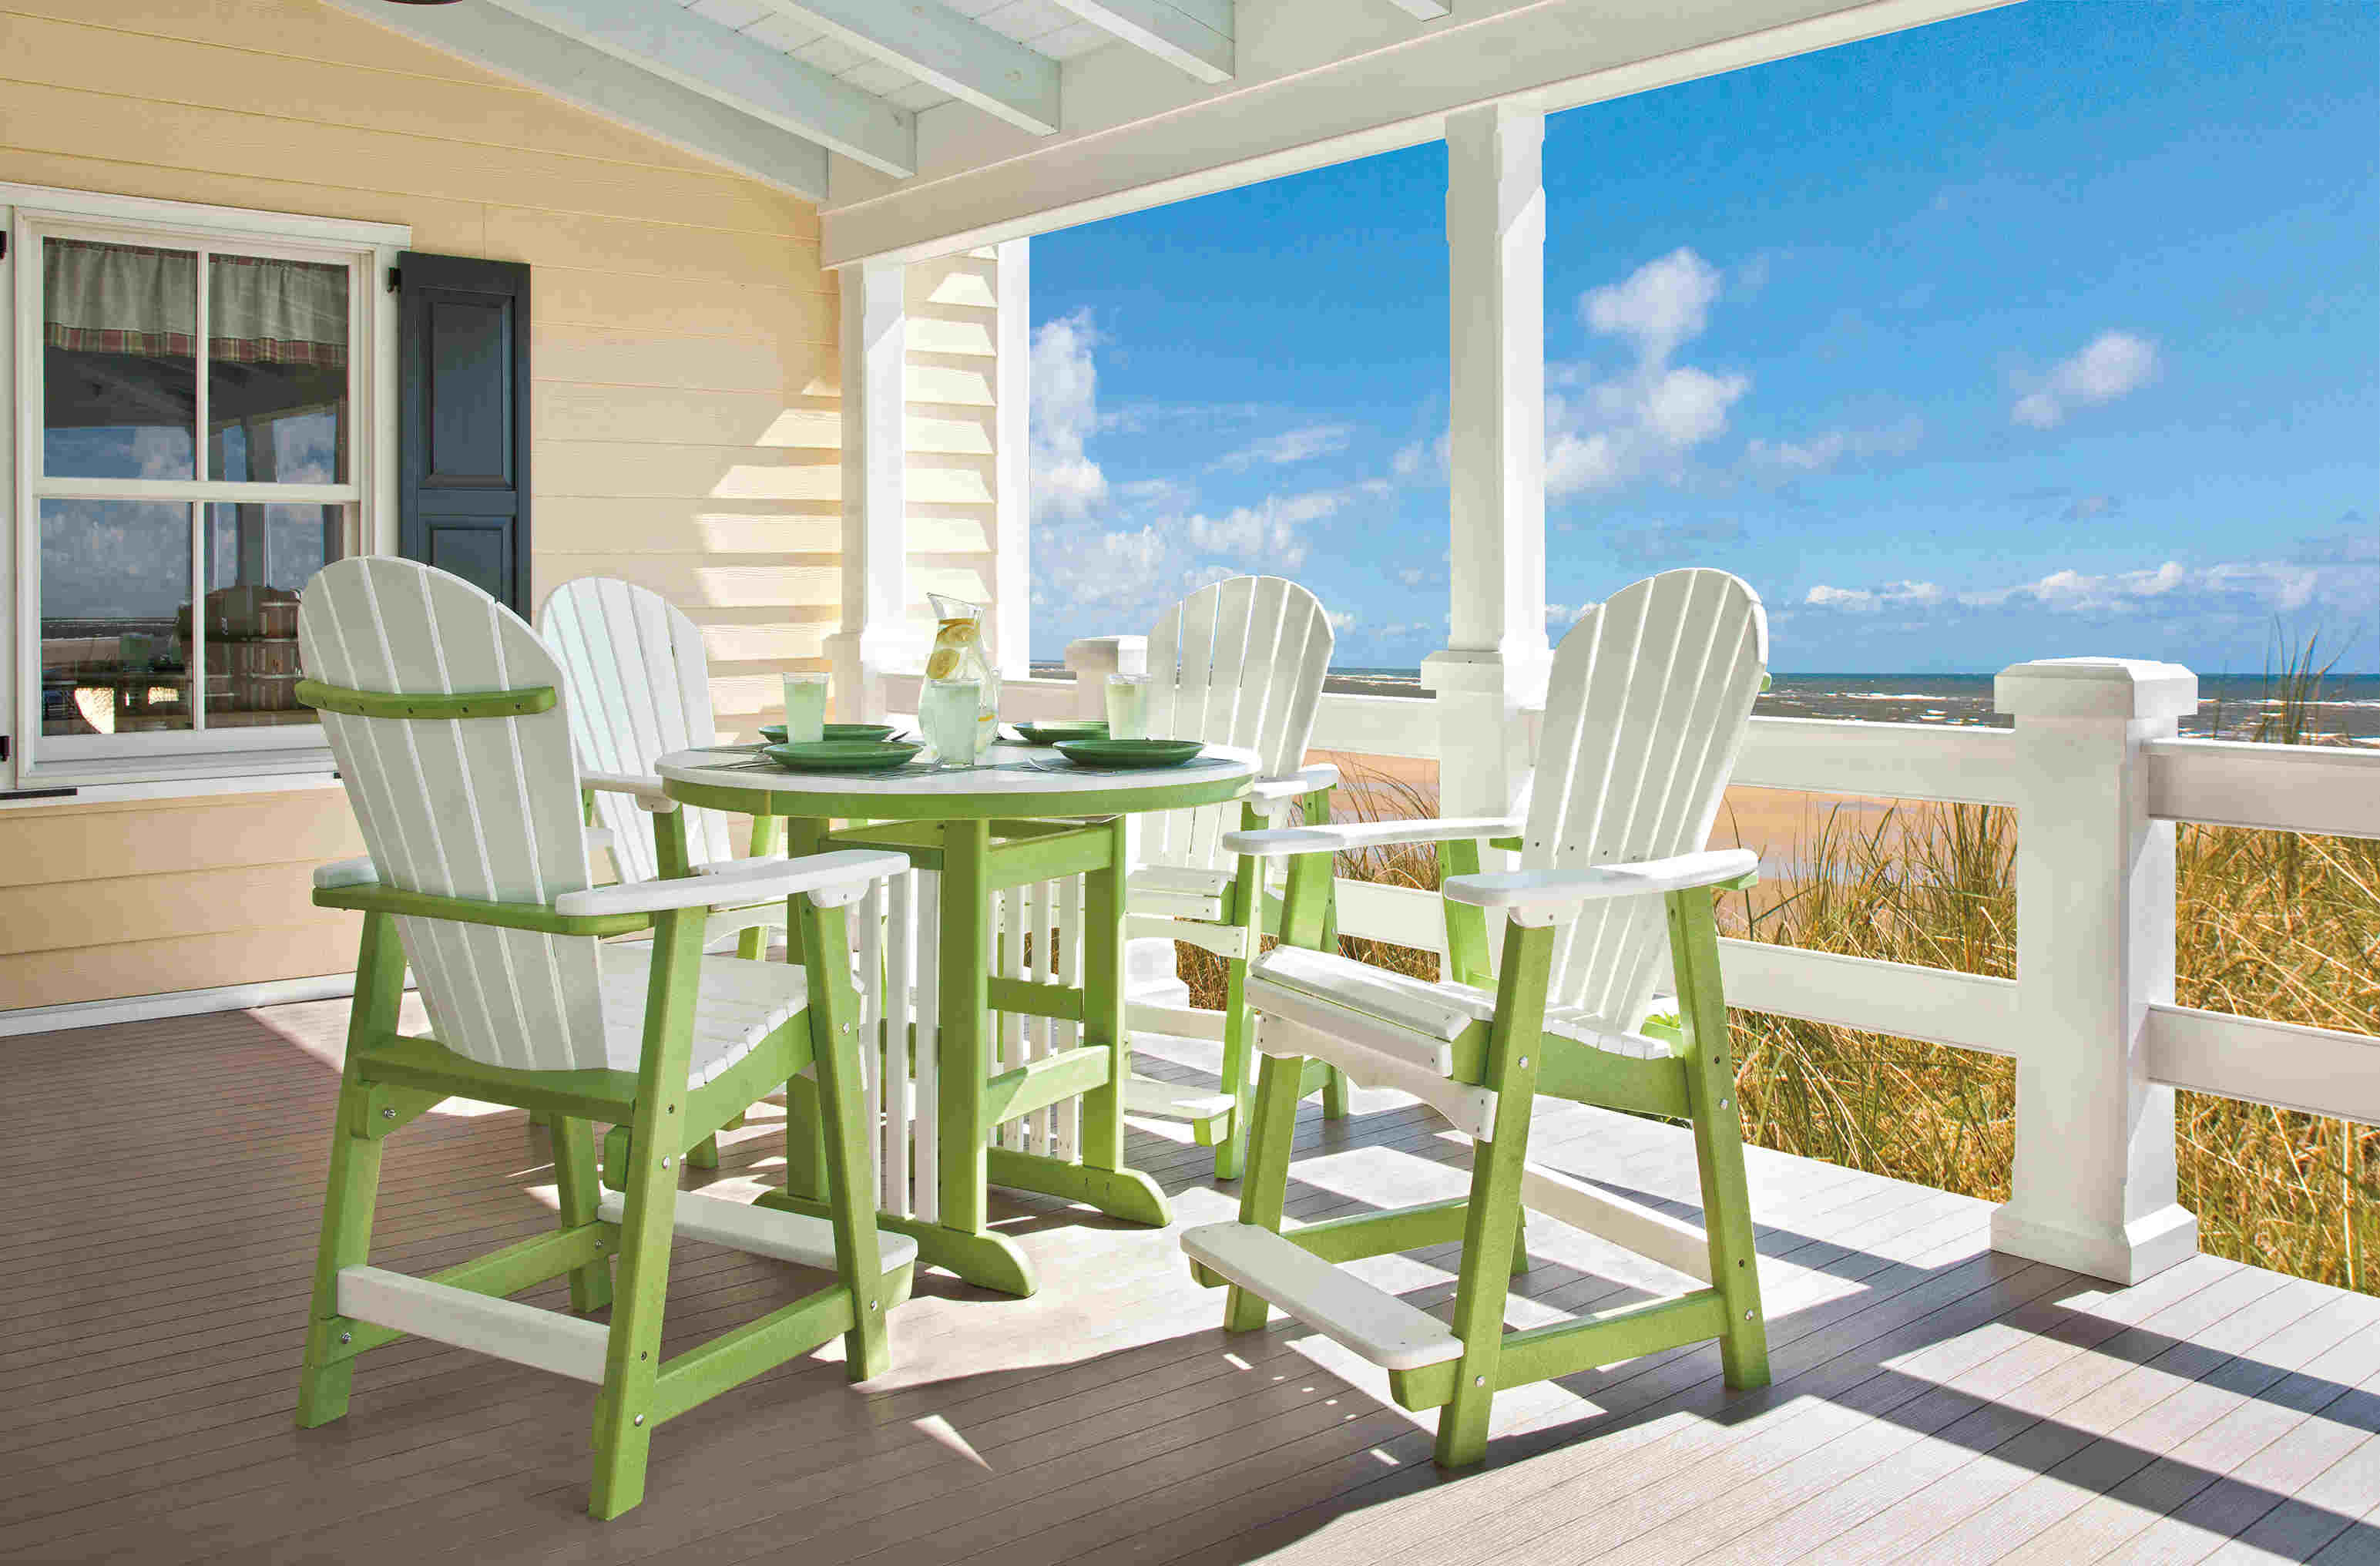 Outdoor Poly Lumber Furniture